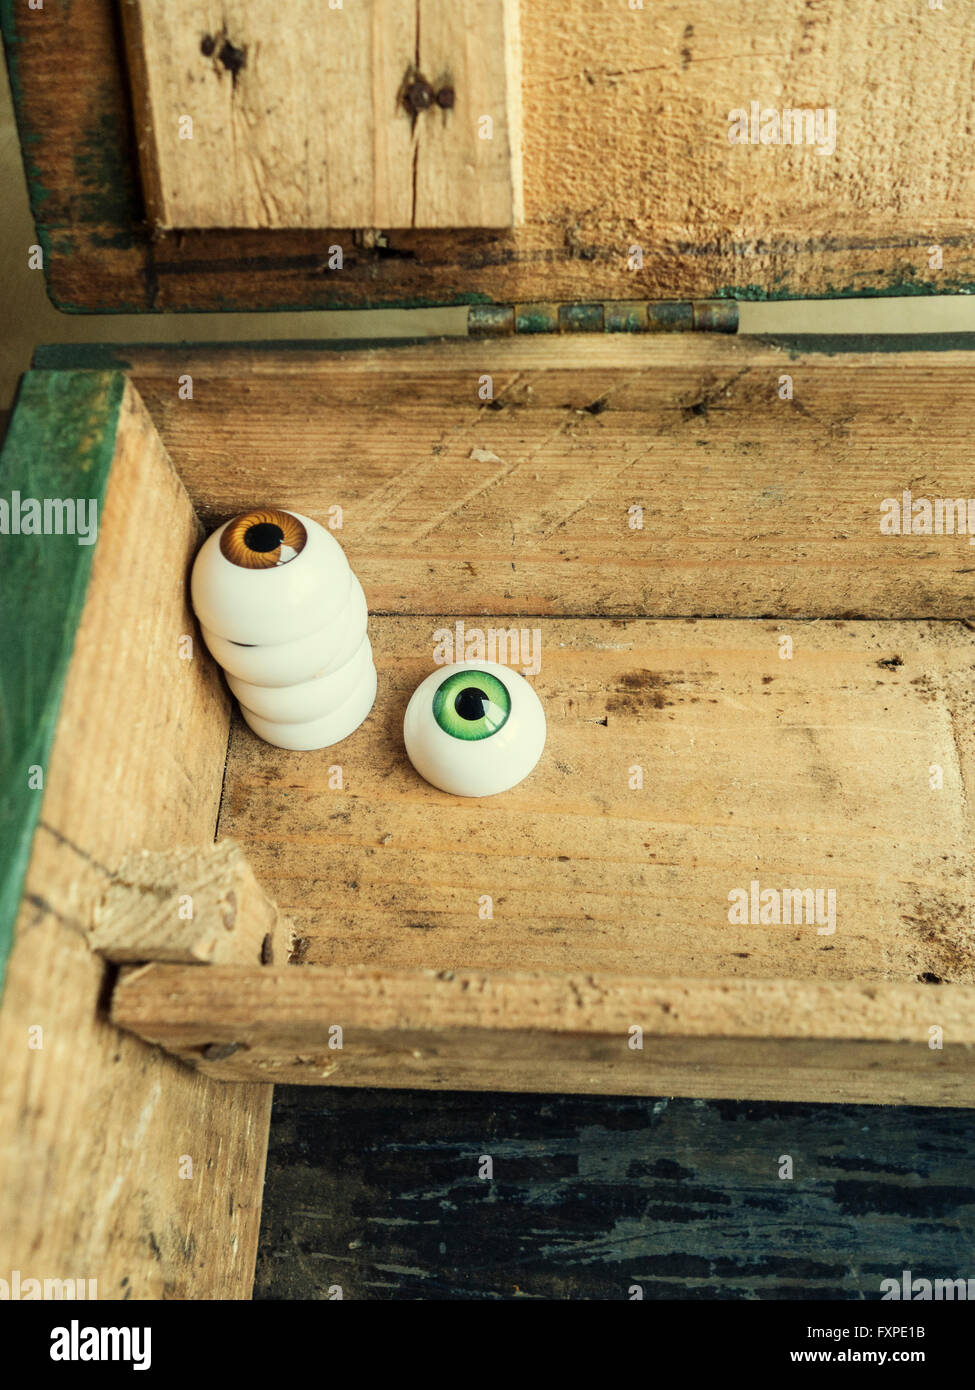 Plastic eyeballs in a wooden box - Stock Image